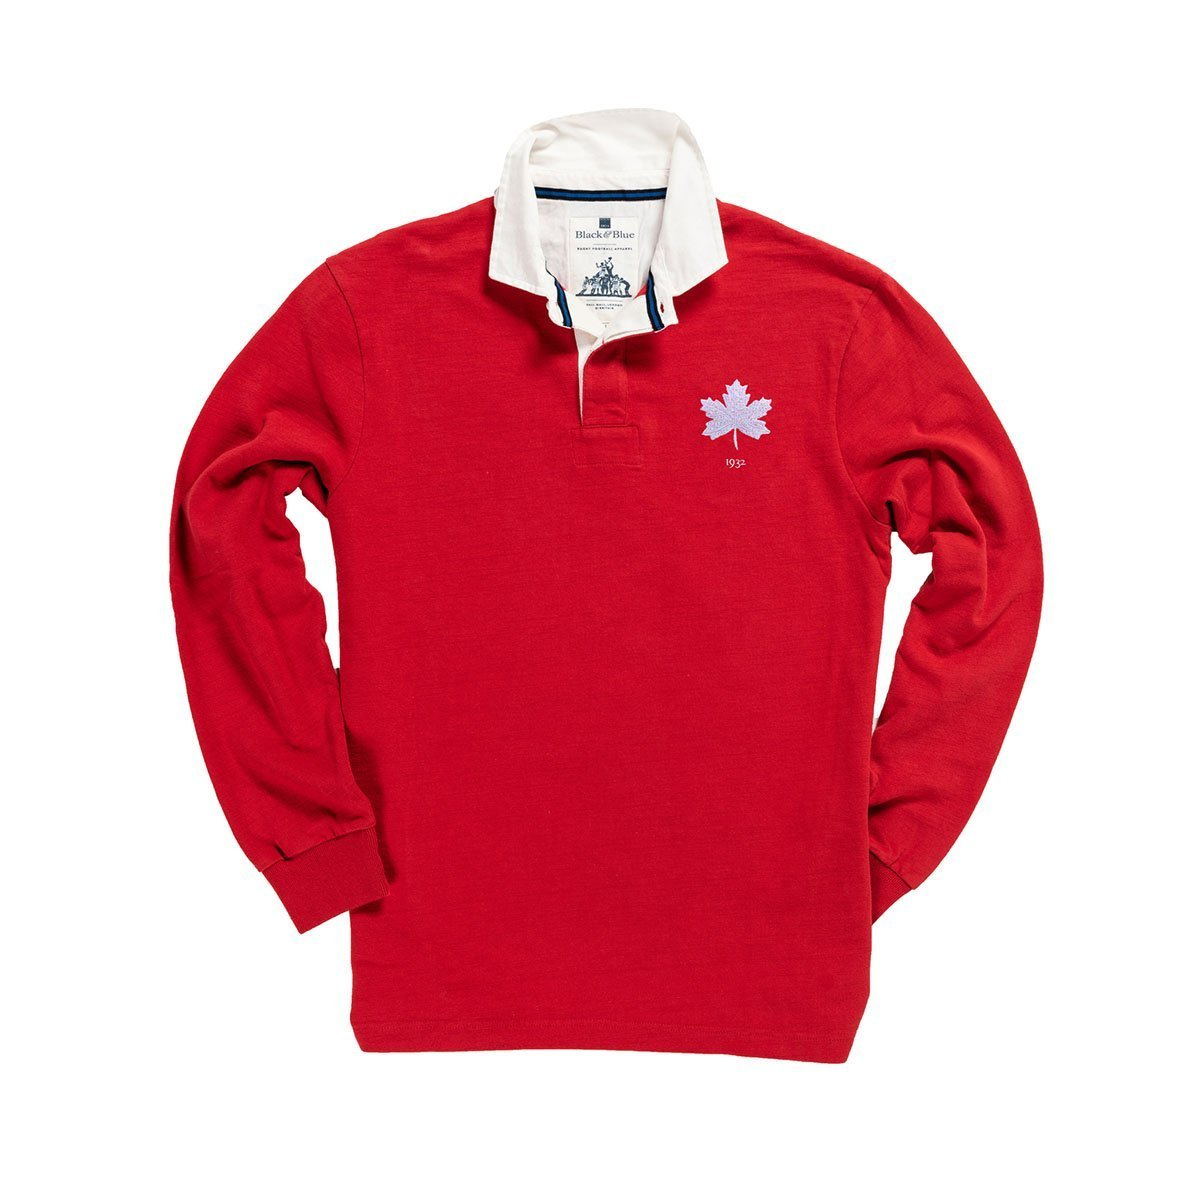 1IN/CAXS, Black & Blue 1871, Canada 1932 Rugby Shirt, Red, Vintage, Classic Rugby Shirt